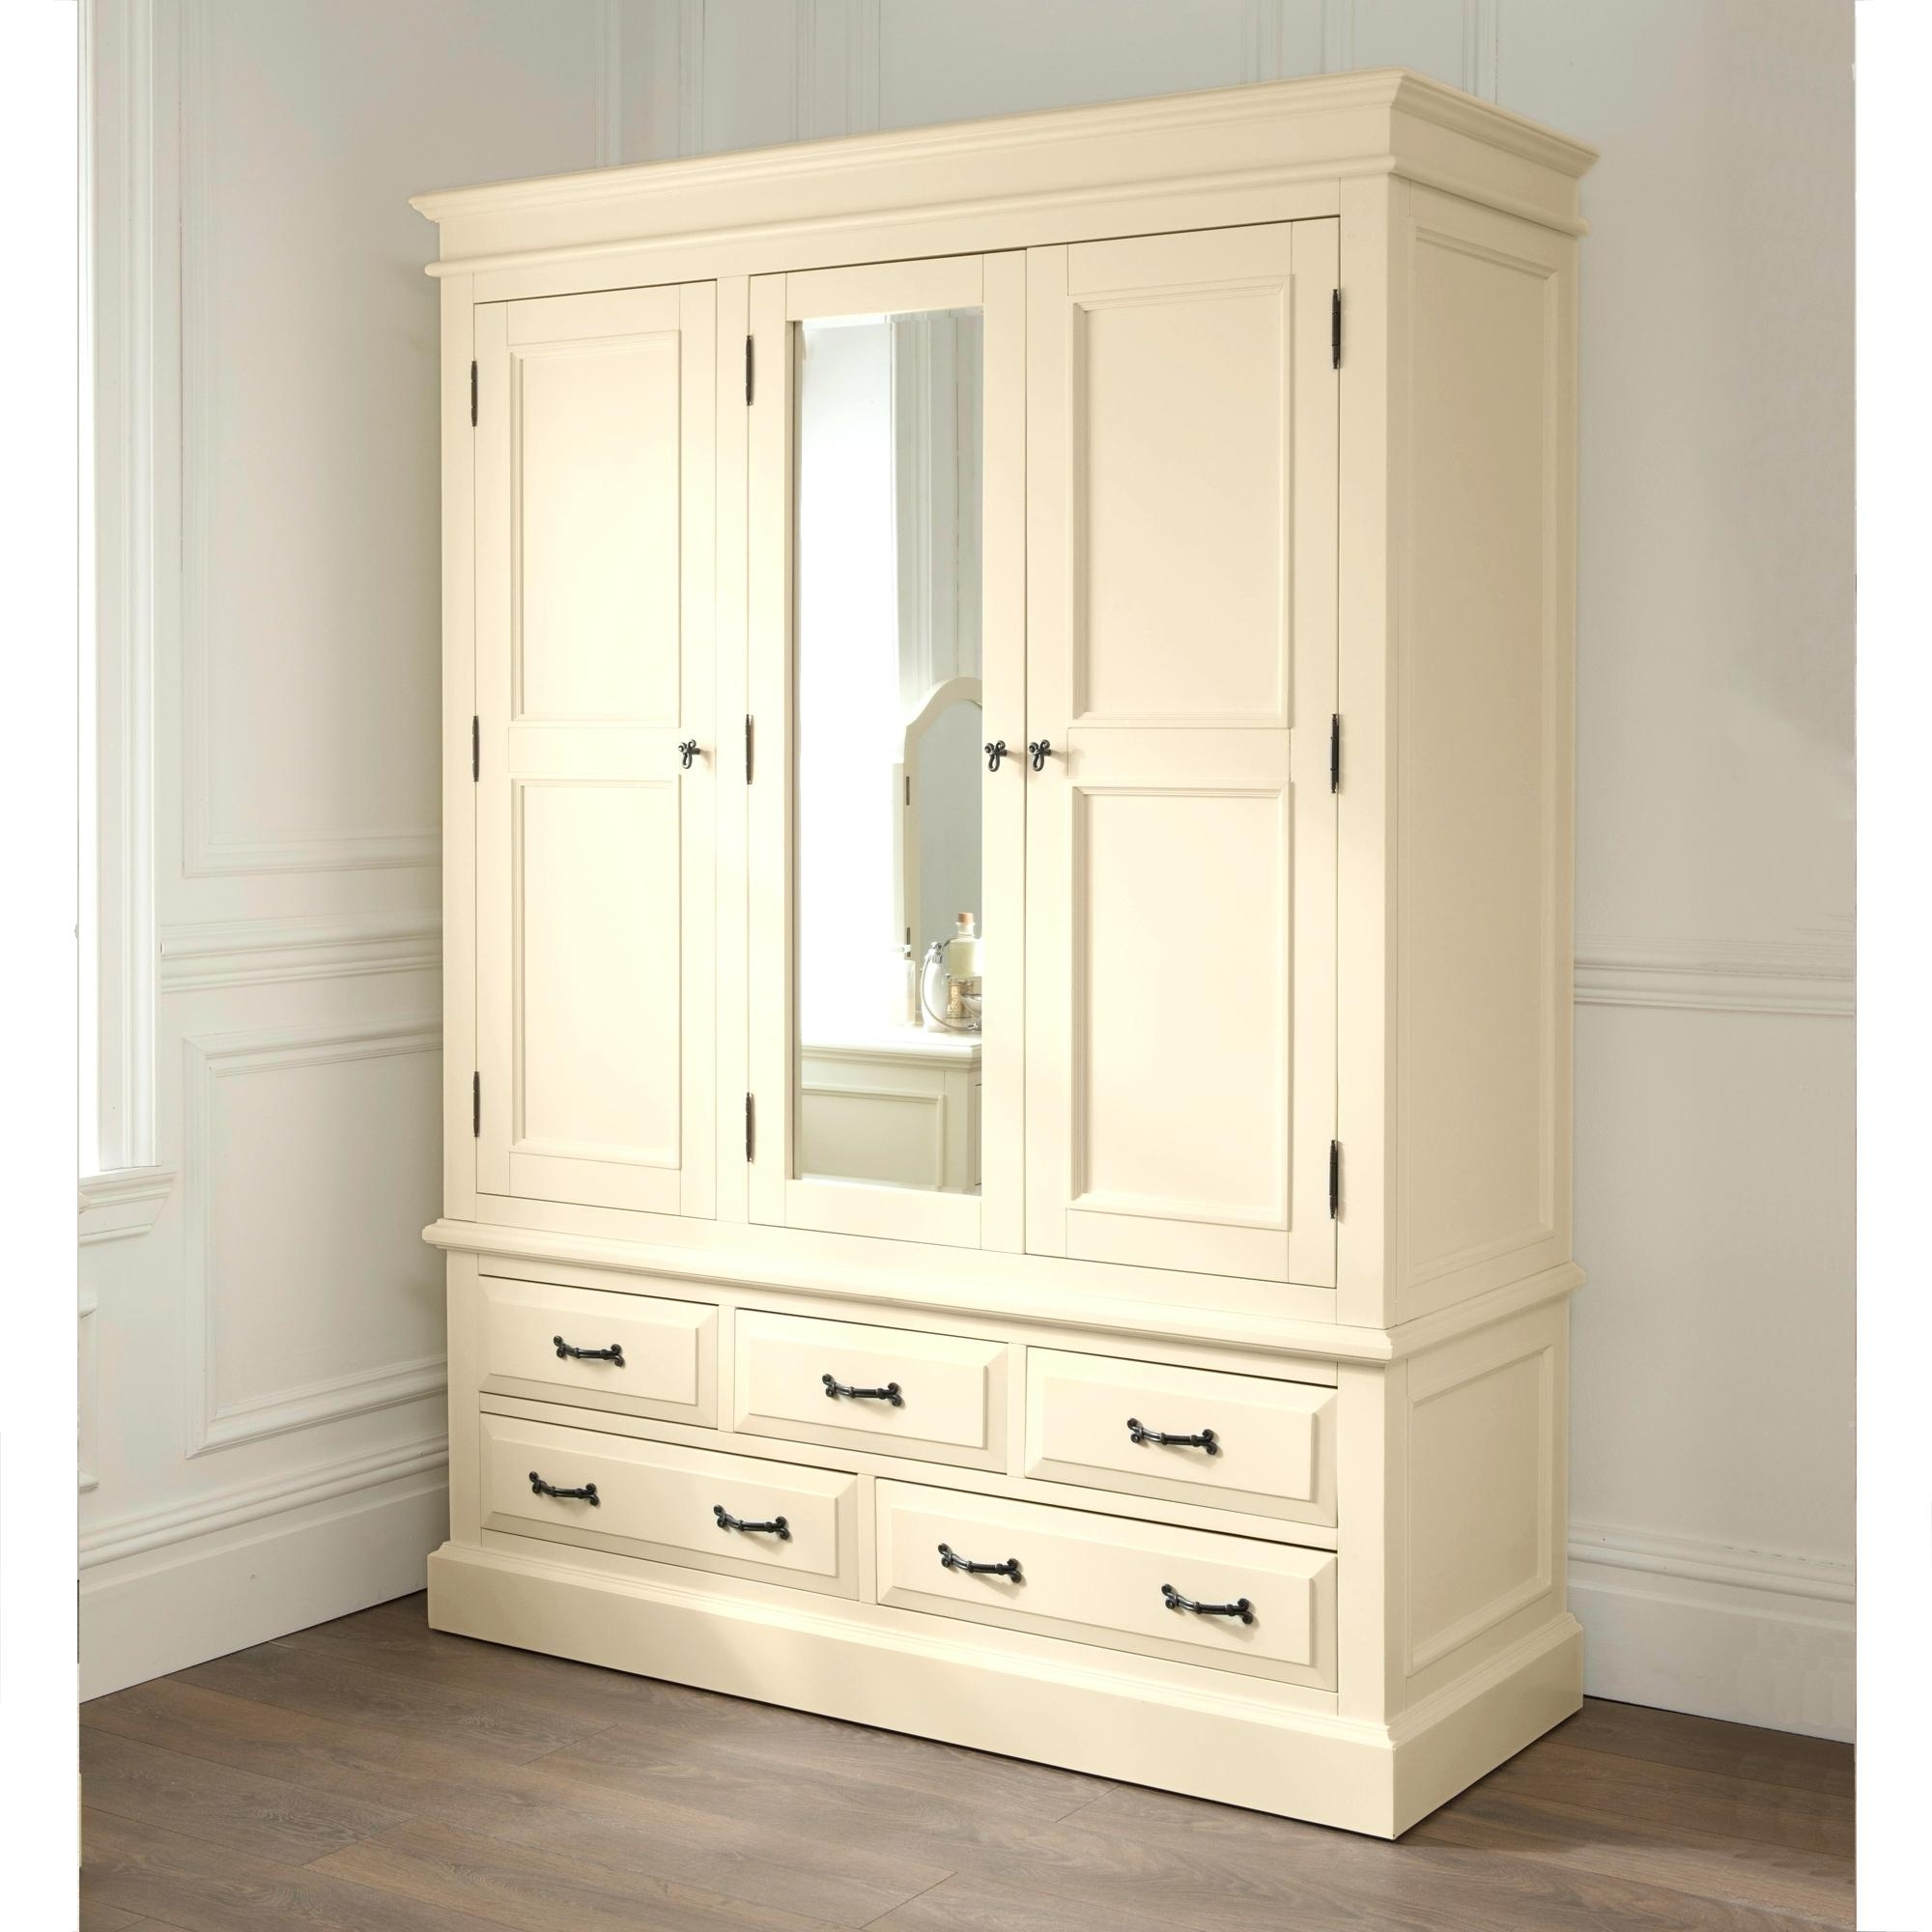 Trendy Small Wardrobes Pertaining To Furniture : Cloth Wardrobe Closet Small Wardrobe Cabinet Mens (View 15 of 15)